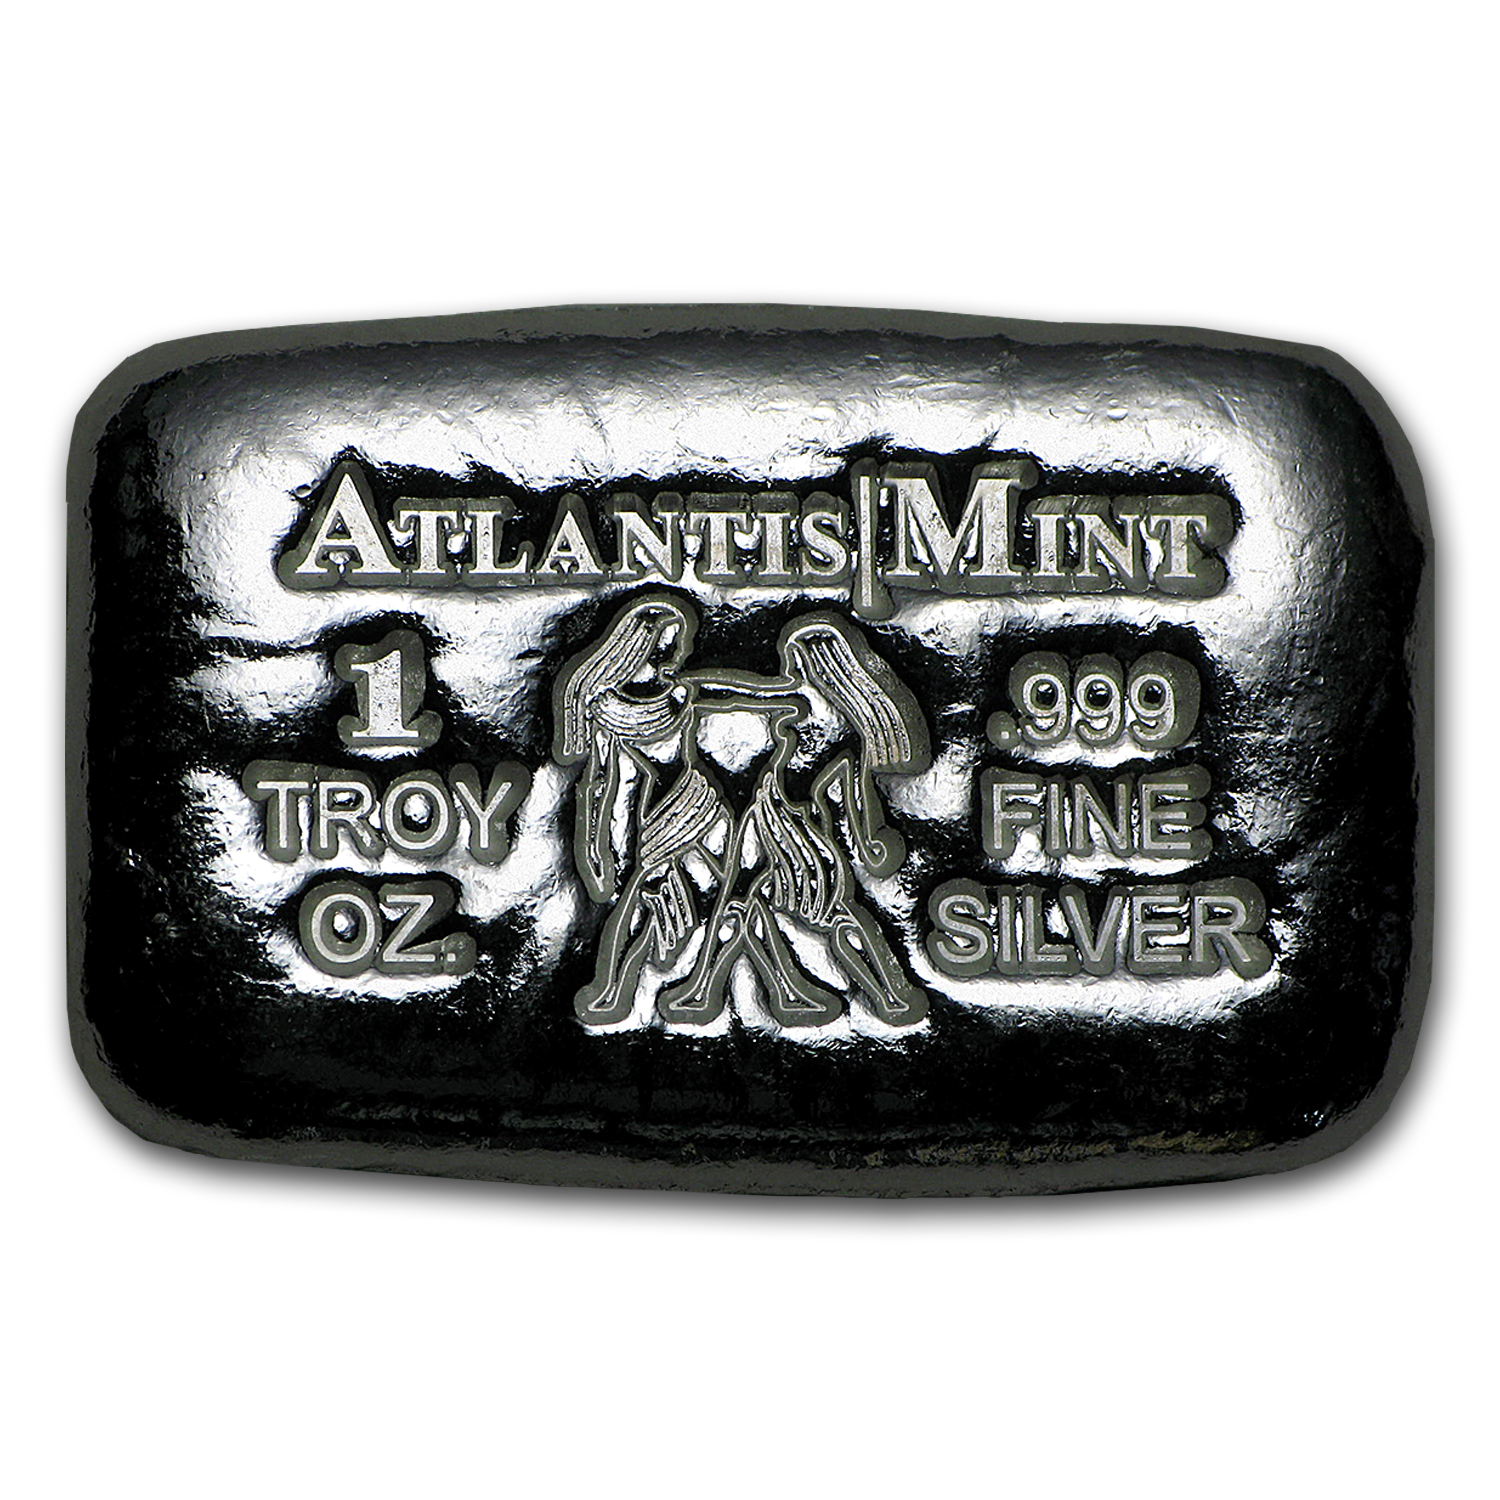 1 oz Silver Bar - Atlantis Mint (Zodiac Series, Gemini)